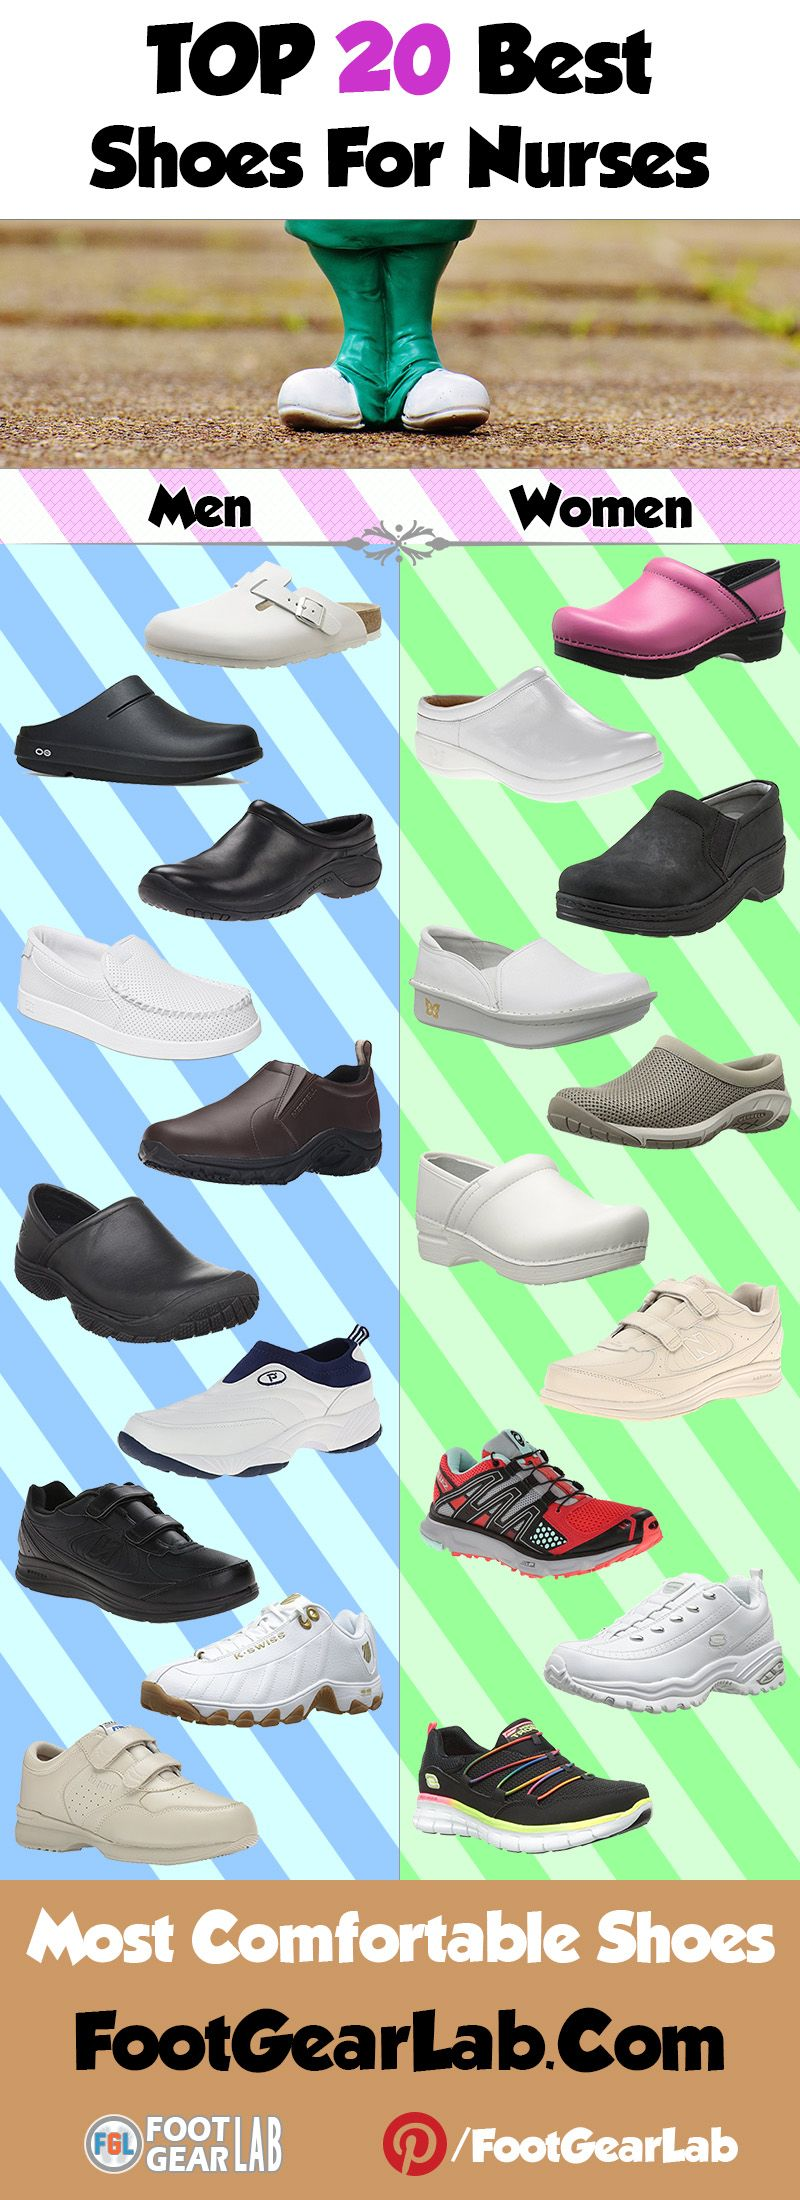 Best Shoes for Nurses - Most Comfortable Shoes. @footgearlab